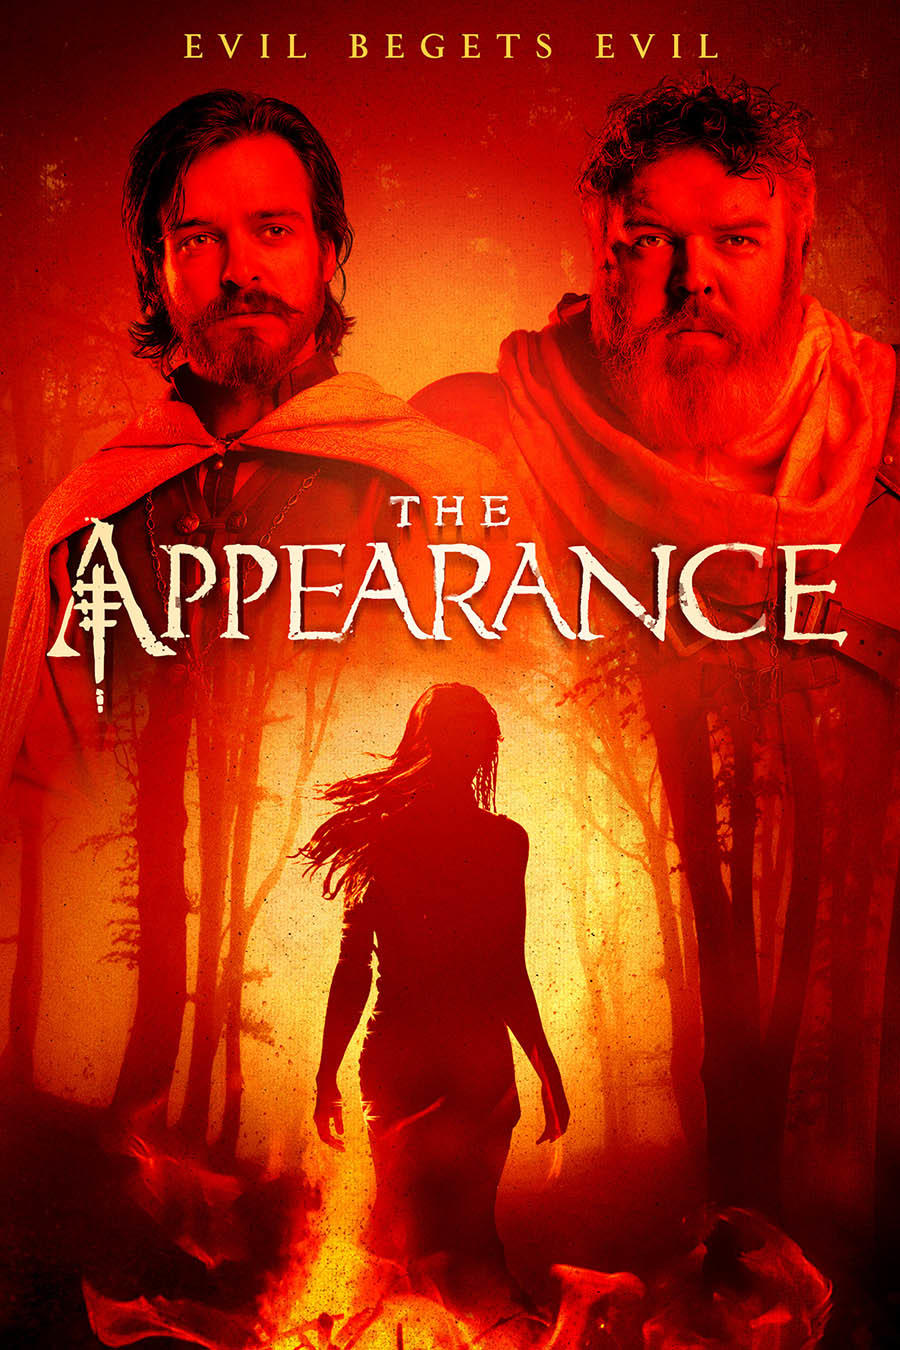 The Appearance poster art